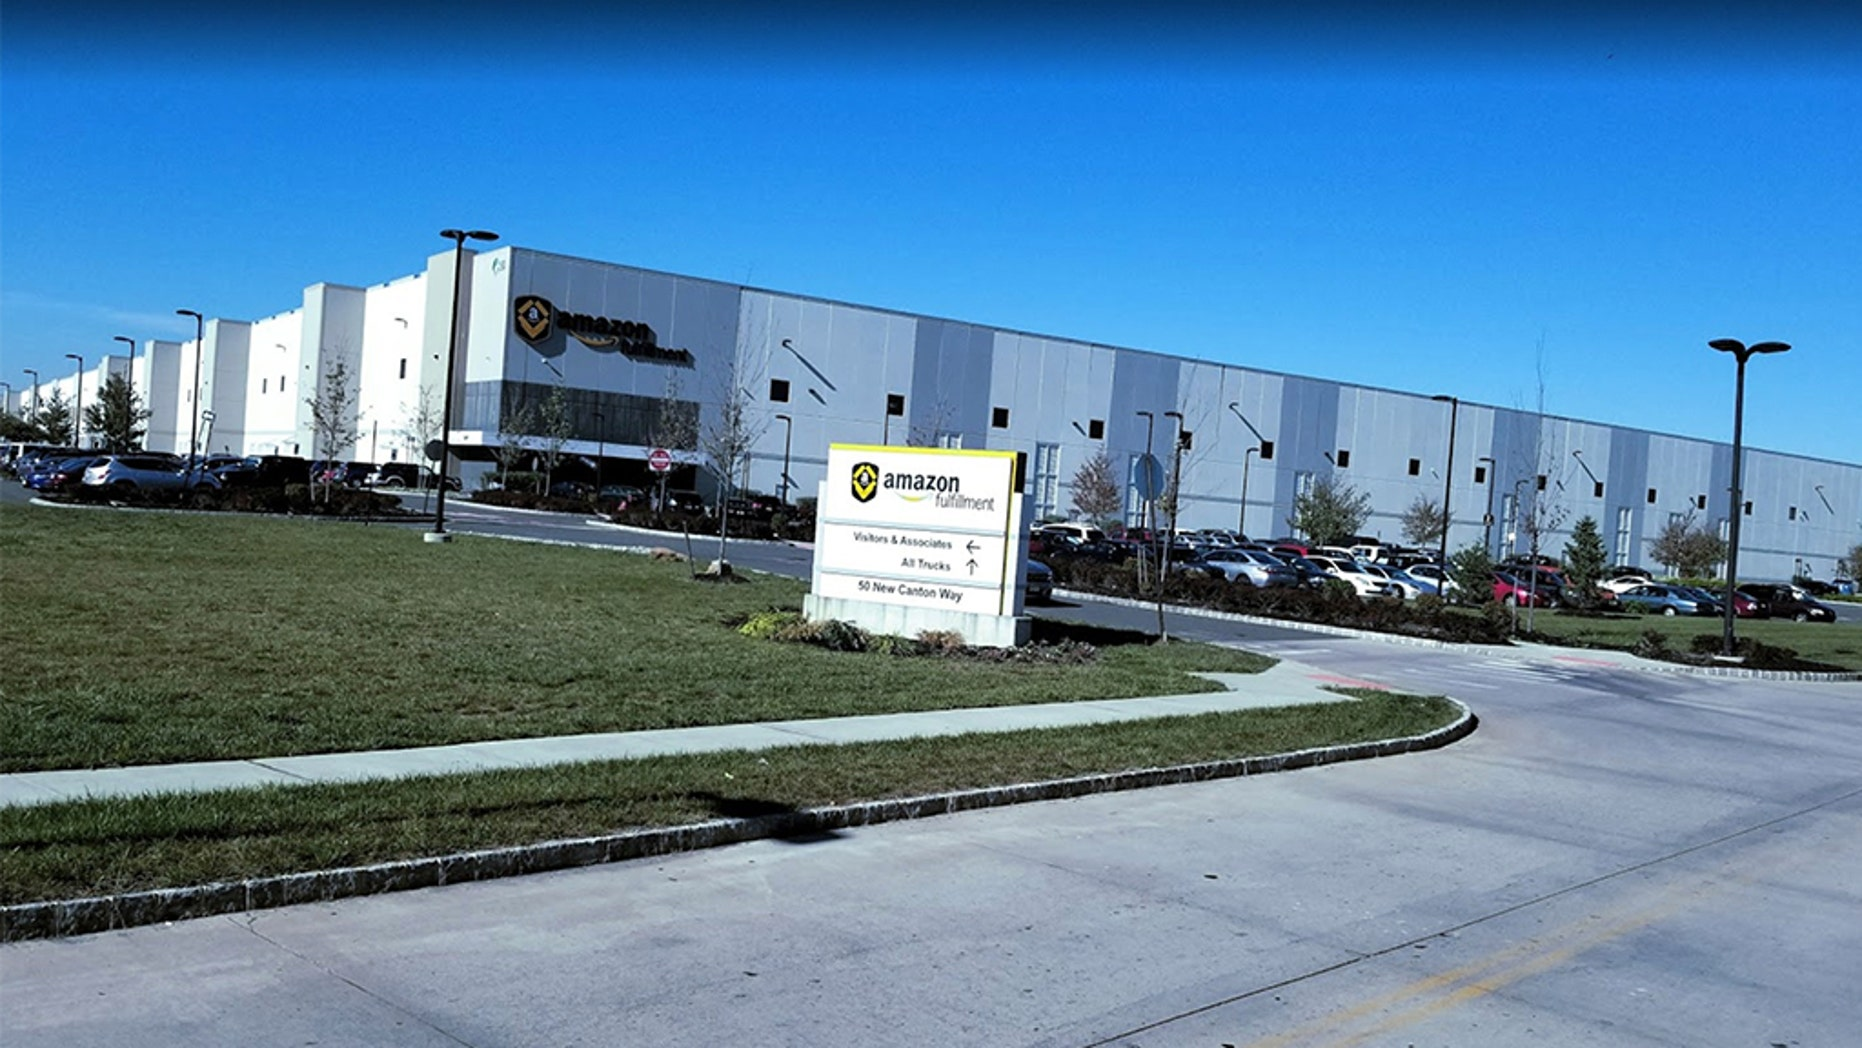 Officials say a total of 54 workers at the Robbinsville facility (pictured) experienced difficulty breathing and burning in the throat and eyes after an automated machine pierced a 9 oz. can of bear repellent at approximately 8:45 a.m.